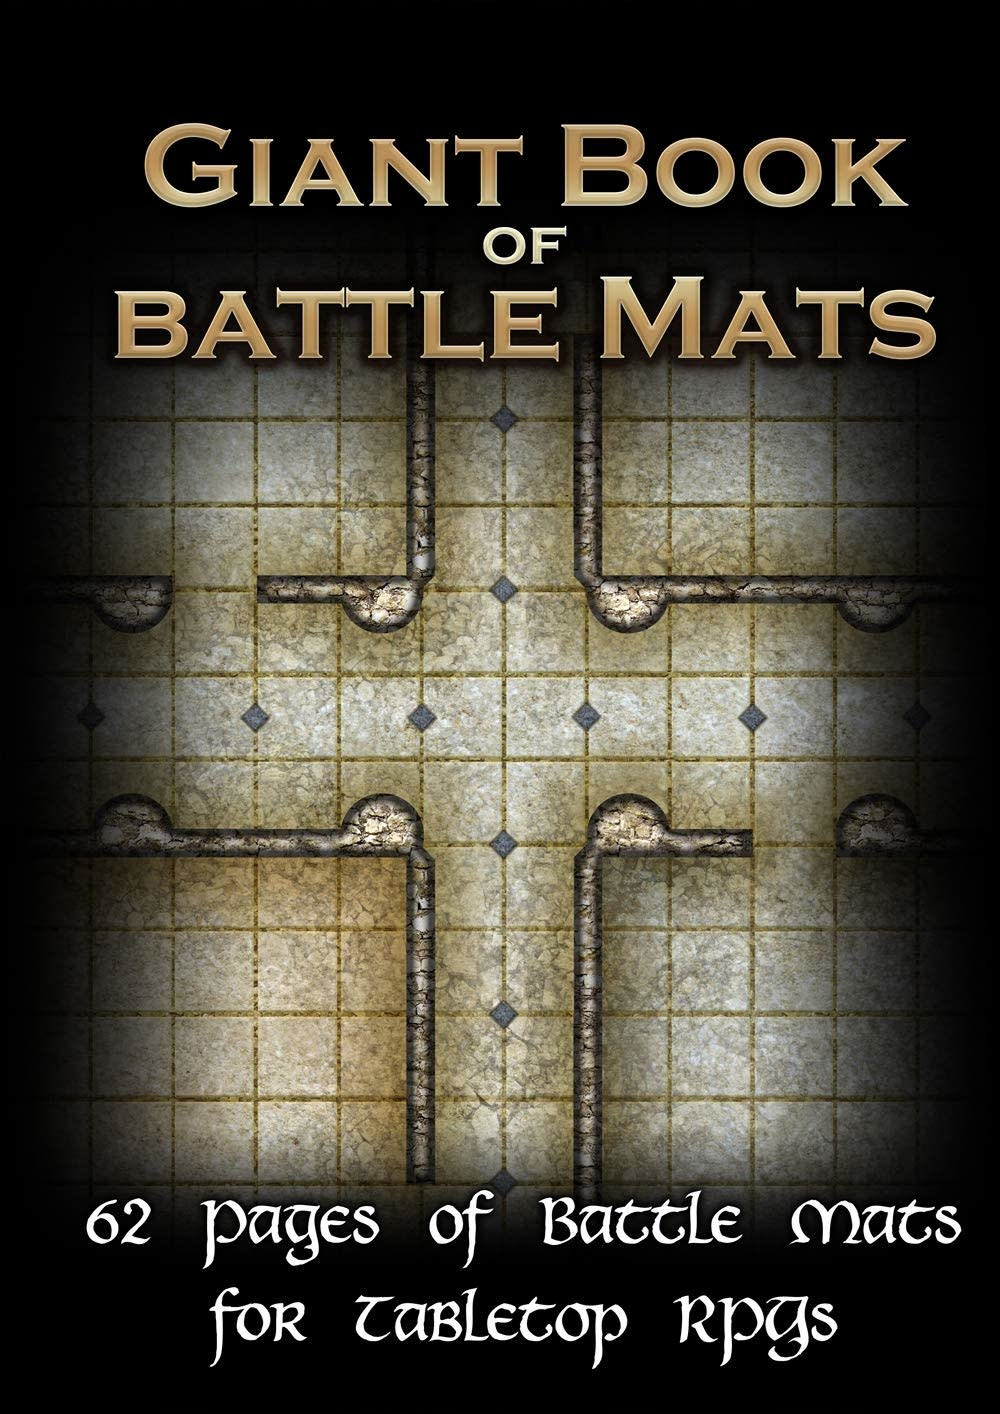 Giant Book of Battle Mats